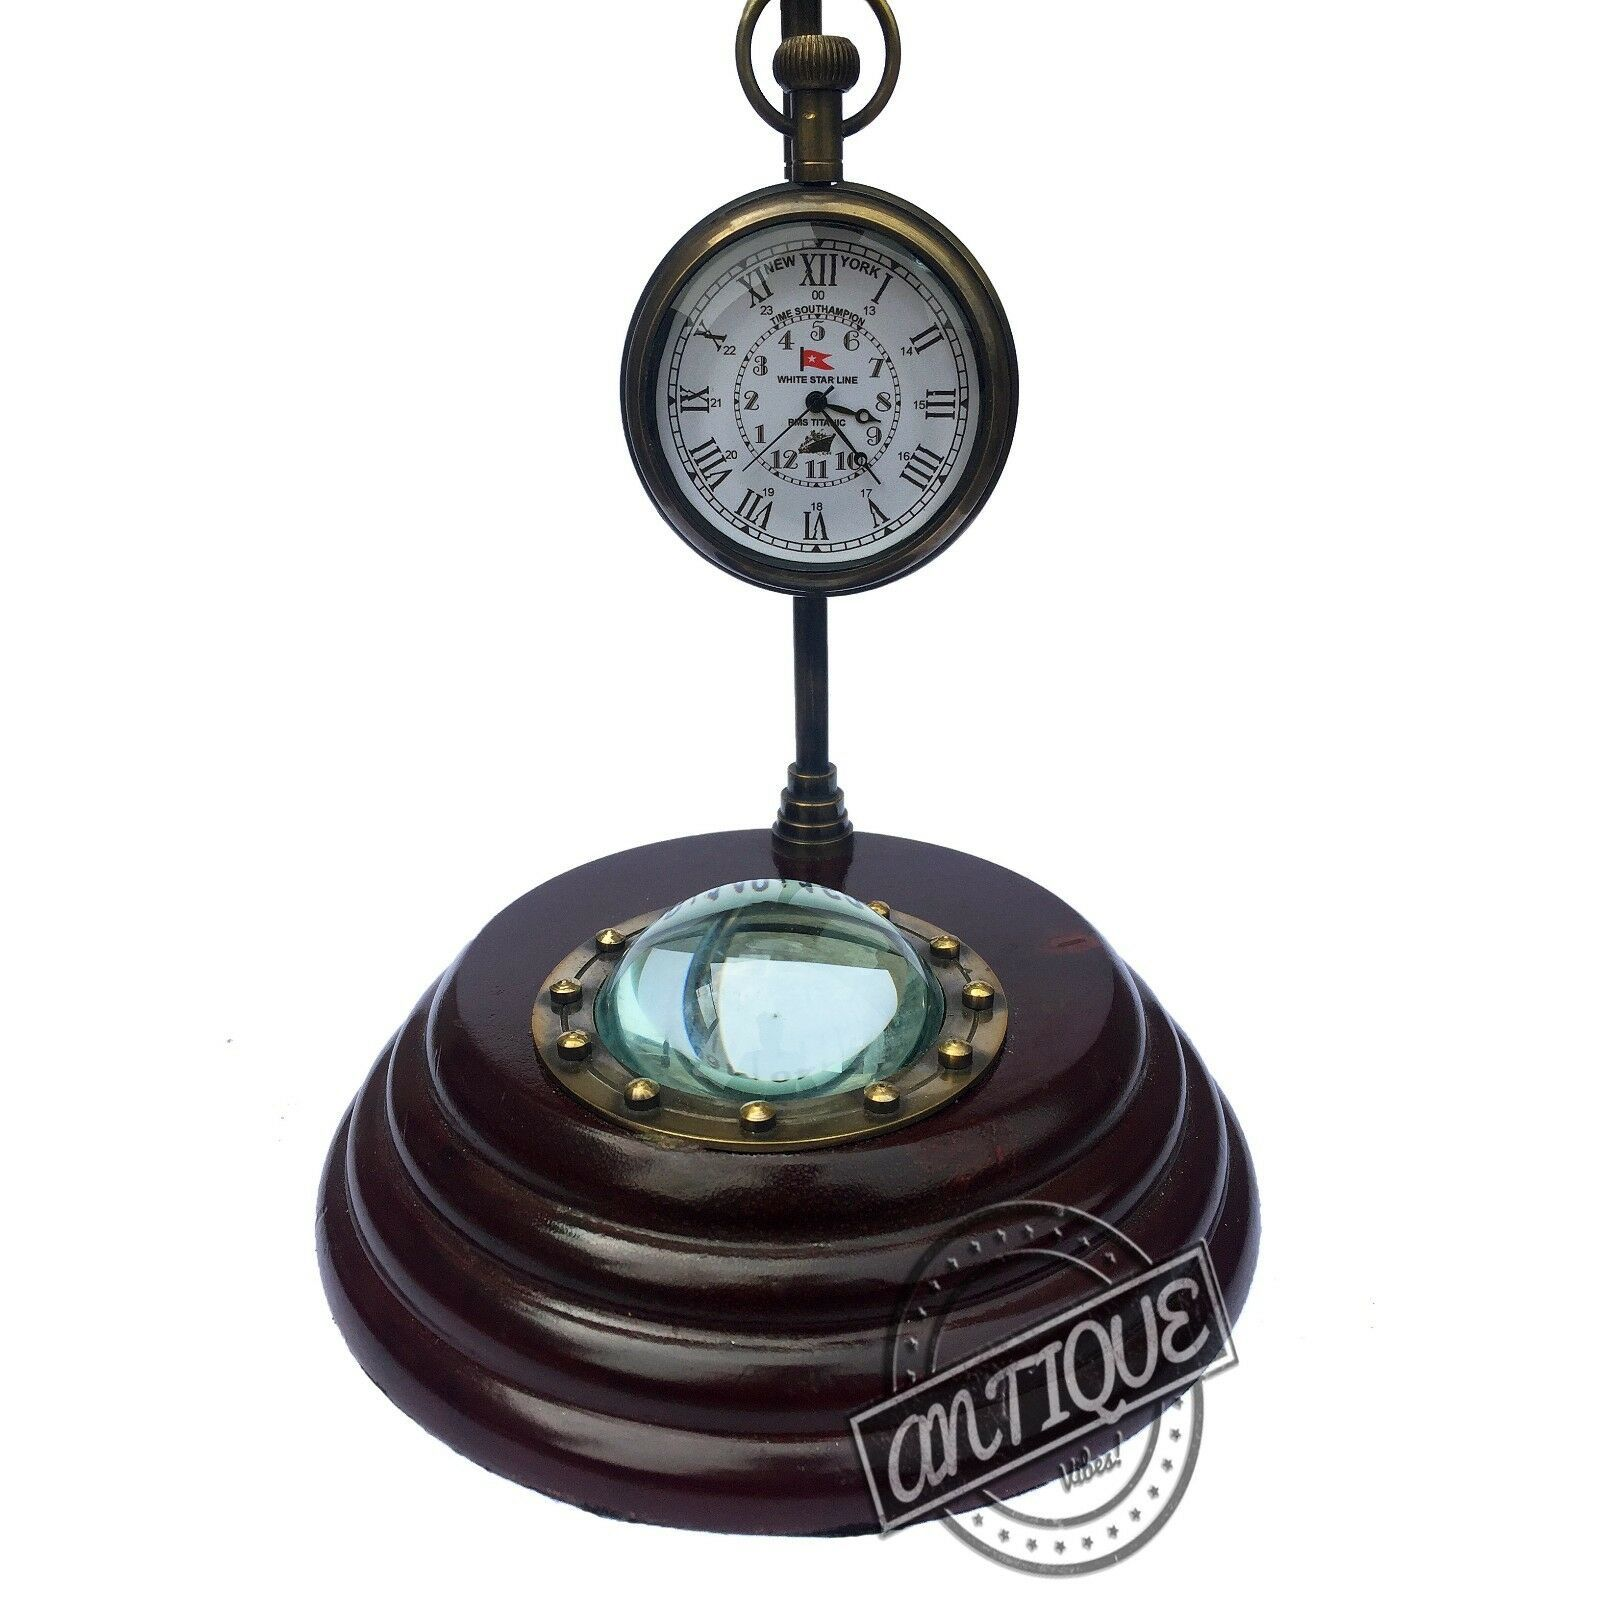 Vintage Antique Style Clocks Wooden Table Top Retro Home/Office Decorative - $23.10